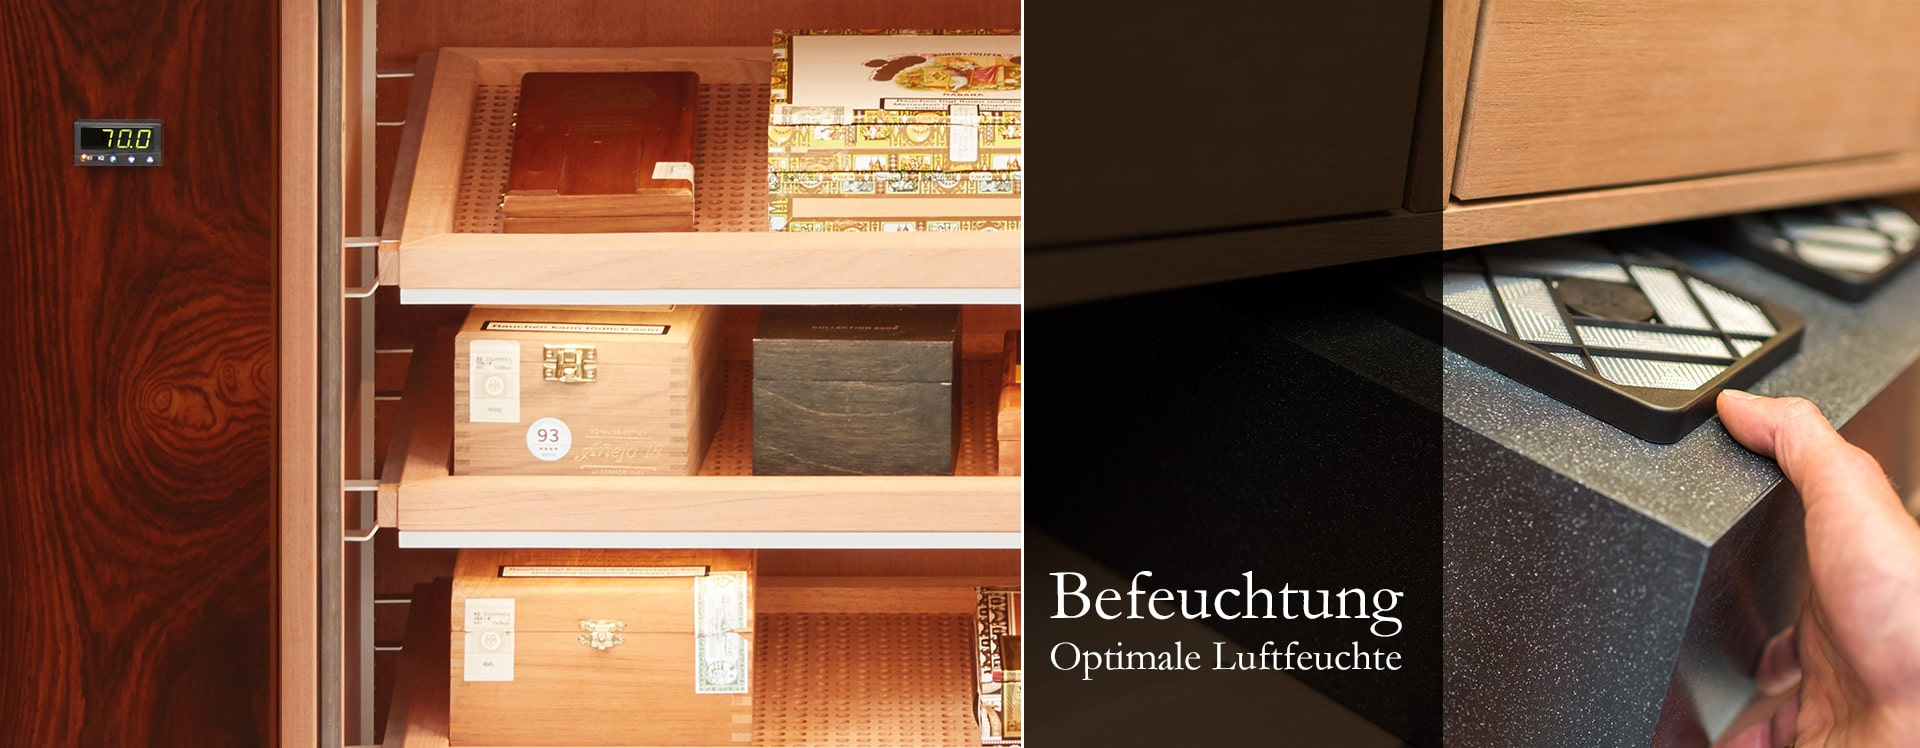 Befeuchtungssysteme Gerber Humidor